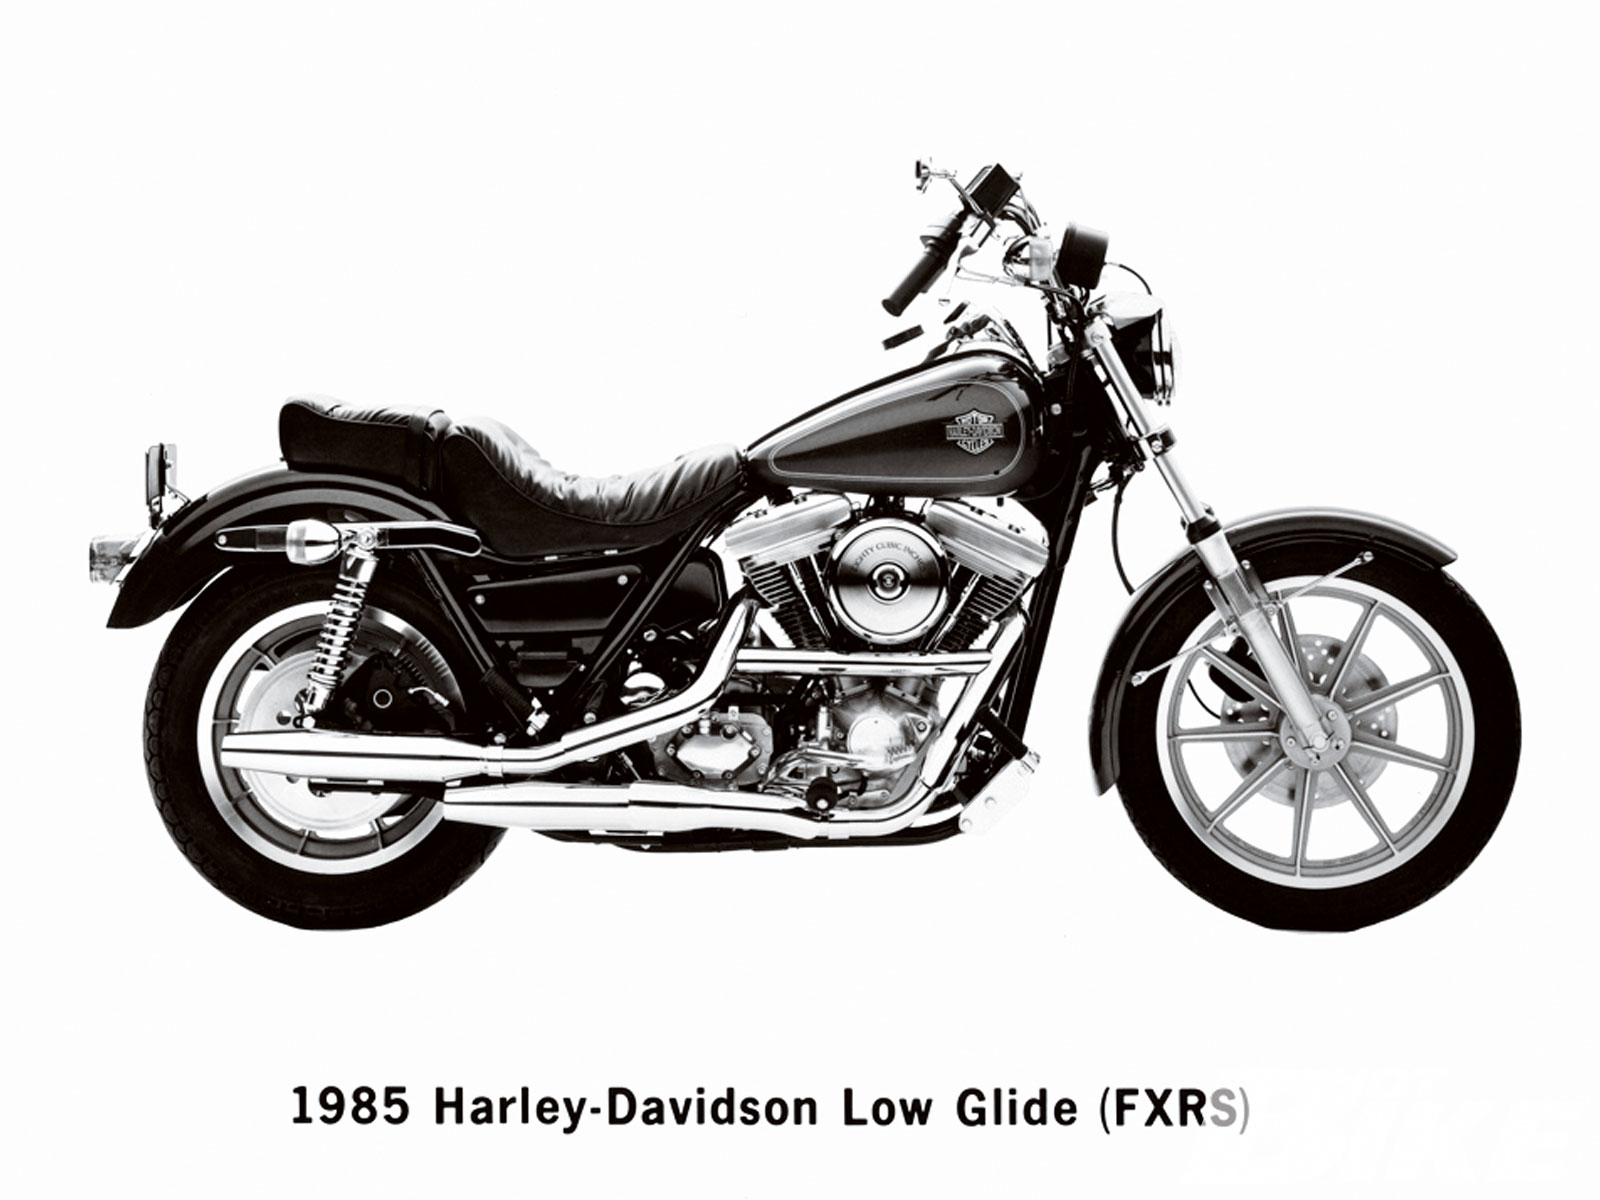 Harley Davidson Fxr Wiring Diagram | Wiring Liry on harley fxr fuse, harley fxr transmission, harley fxr frame, harley handle bar wiring diagrams, harley fxr seats, harley fxr clutch, harley fxr wheels, harley fxr engine, harley fxr speedometer, harley fxr dimensions, buell wiring diagram, harley fxr parts, harley fxr headlight, fatboy wiring diagram, harley fxr exhaust,